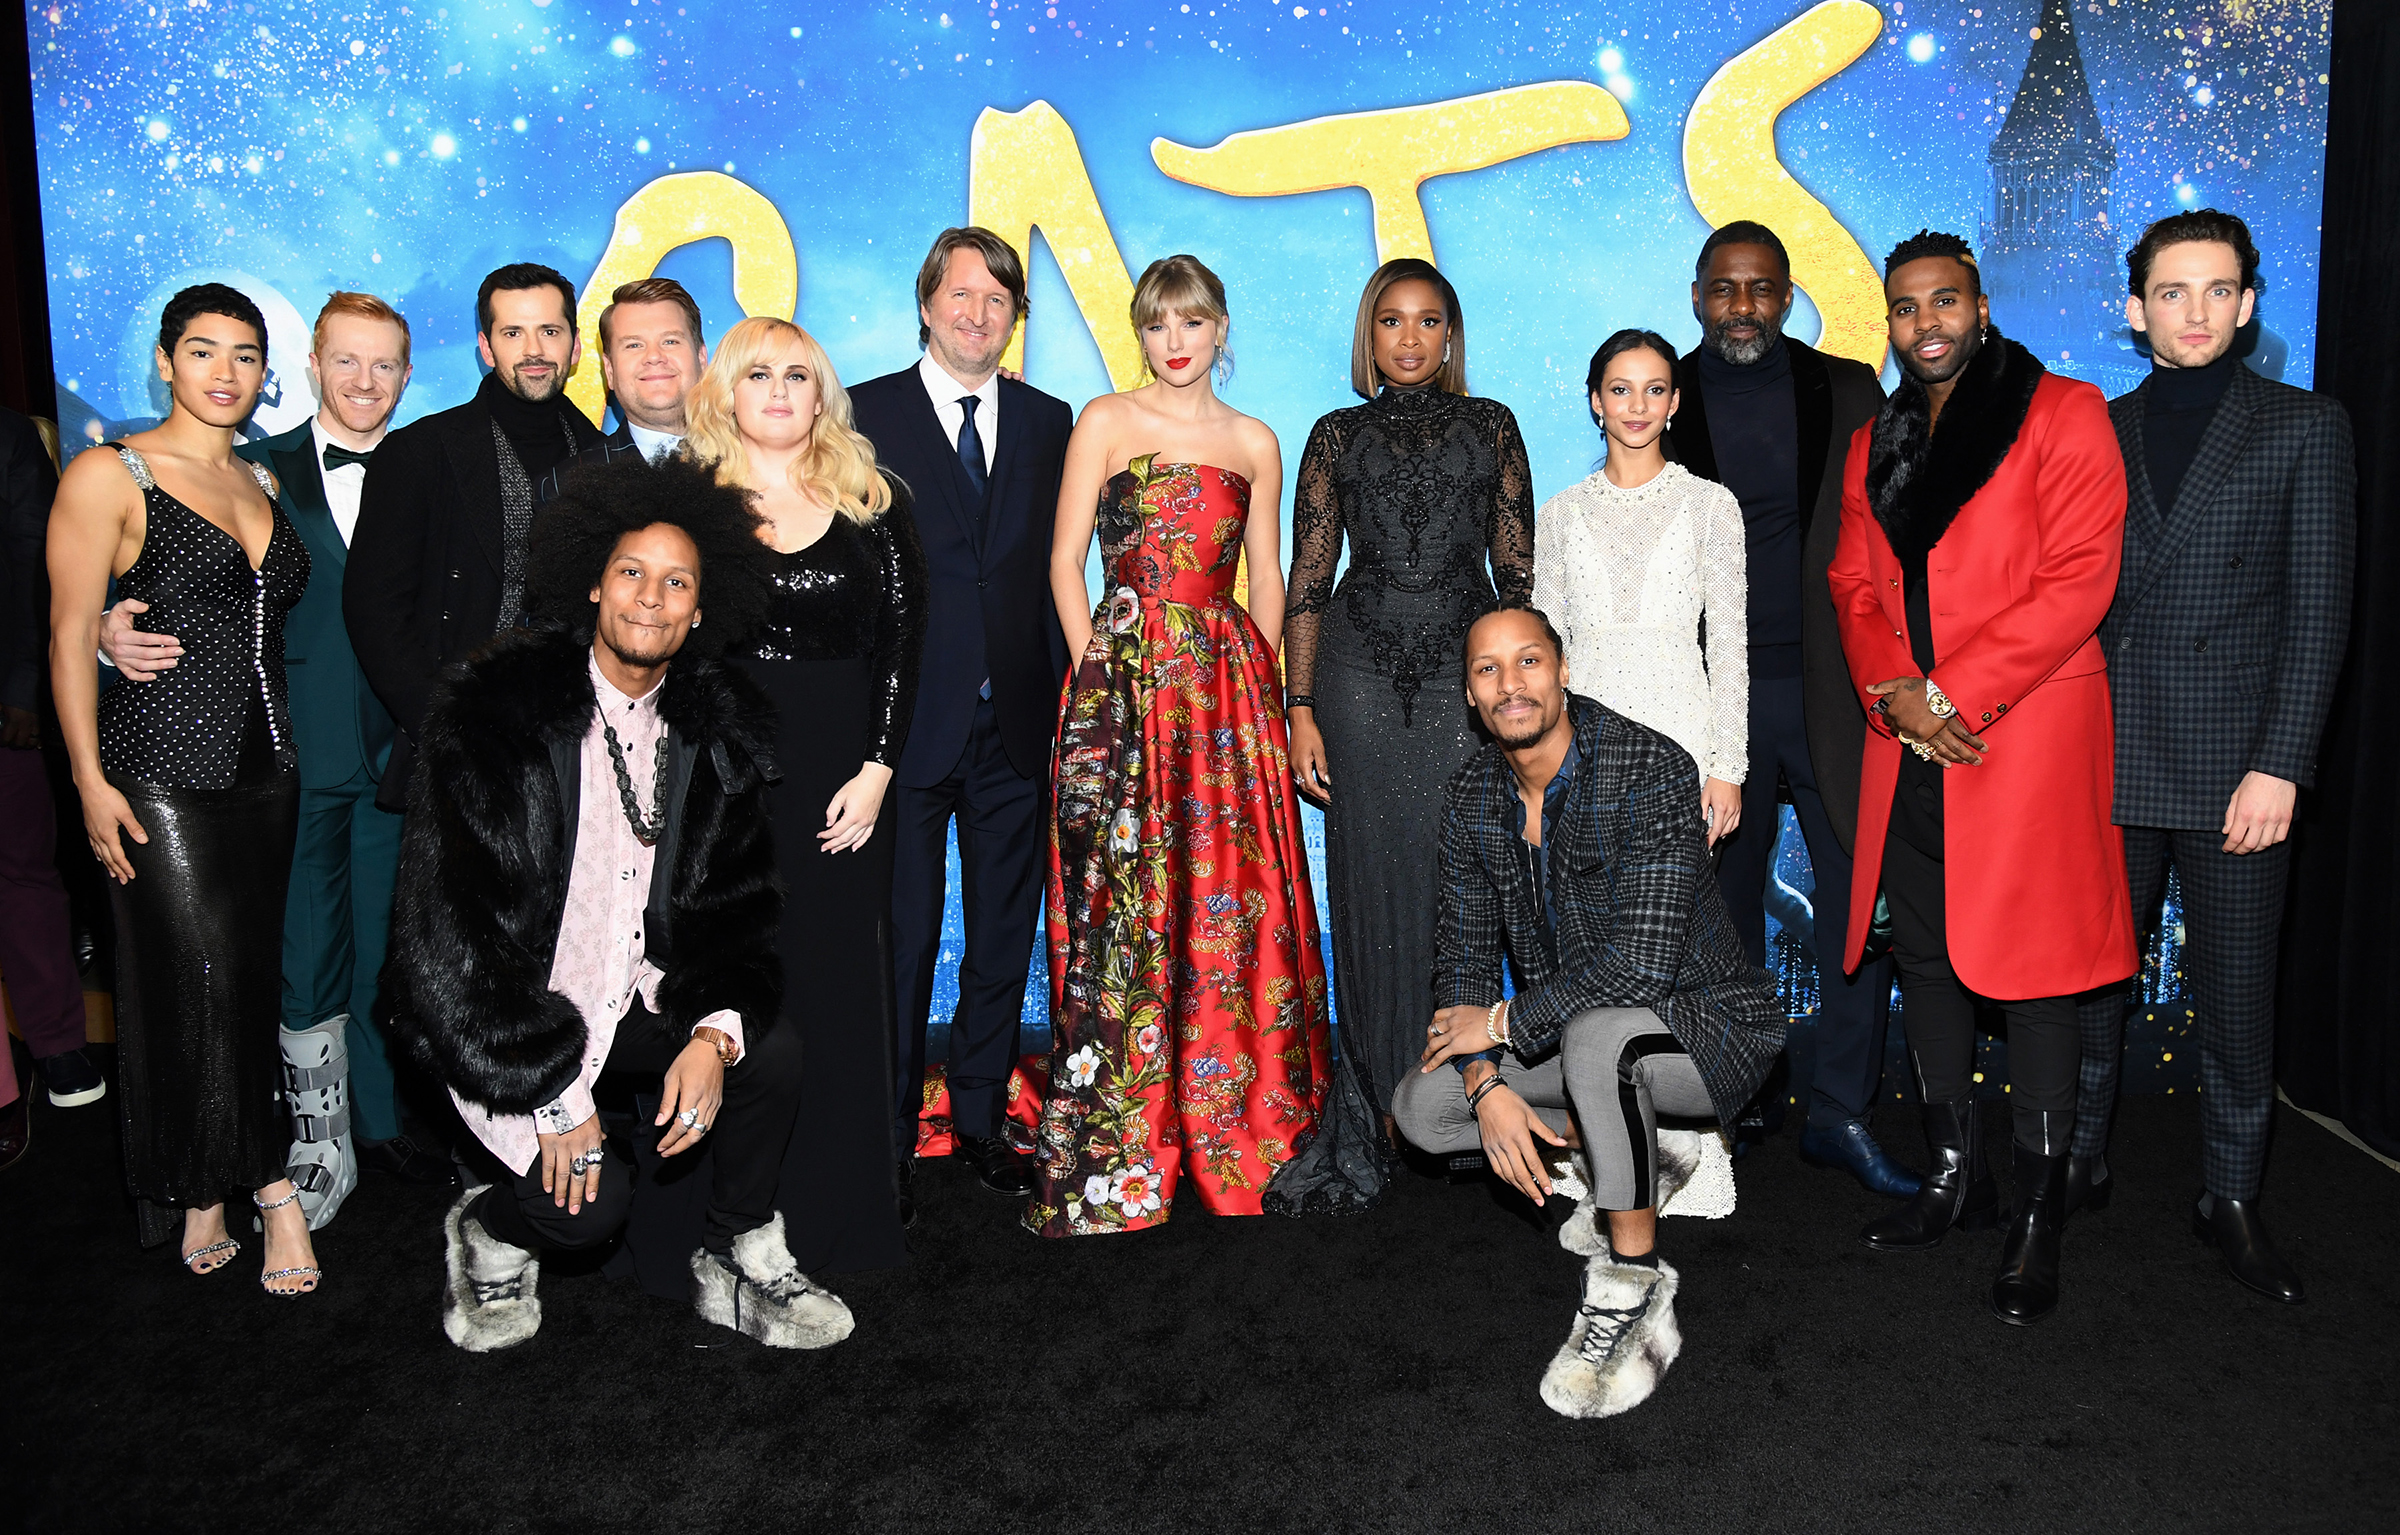 The cast of 'Cats' attends The World Premiere of Cats, presented by Universal Pictures in New York City on Dec 16, 2019.